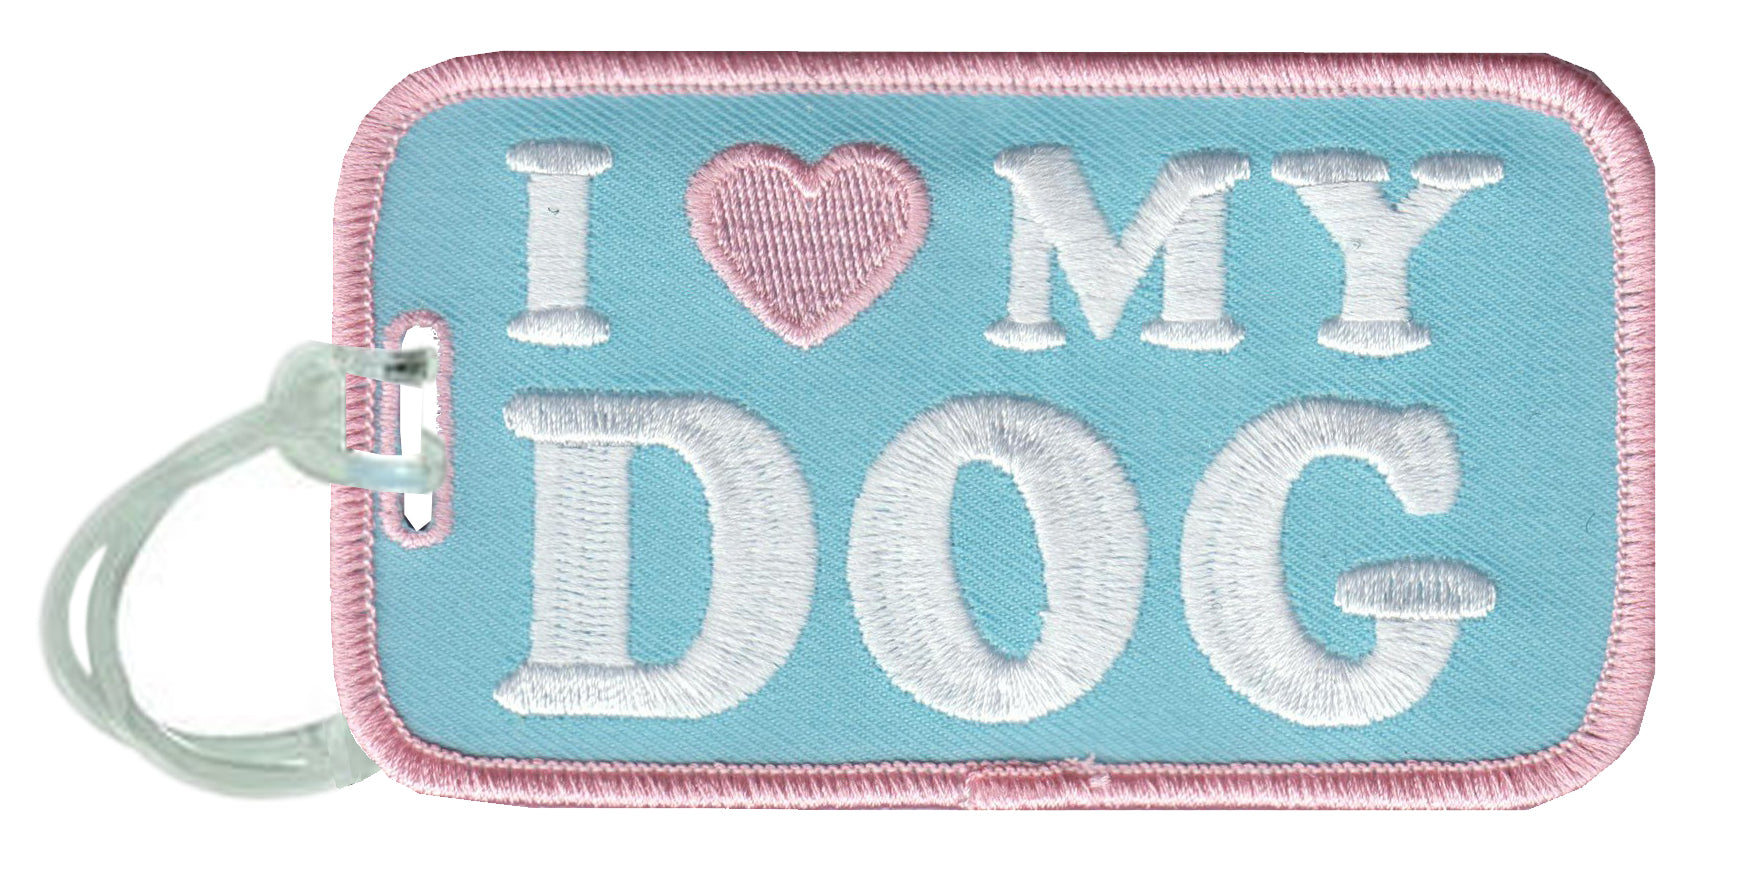 I Love My Dog Wholesale Luggage Tags